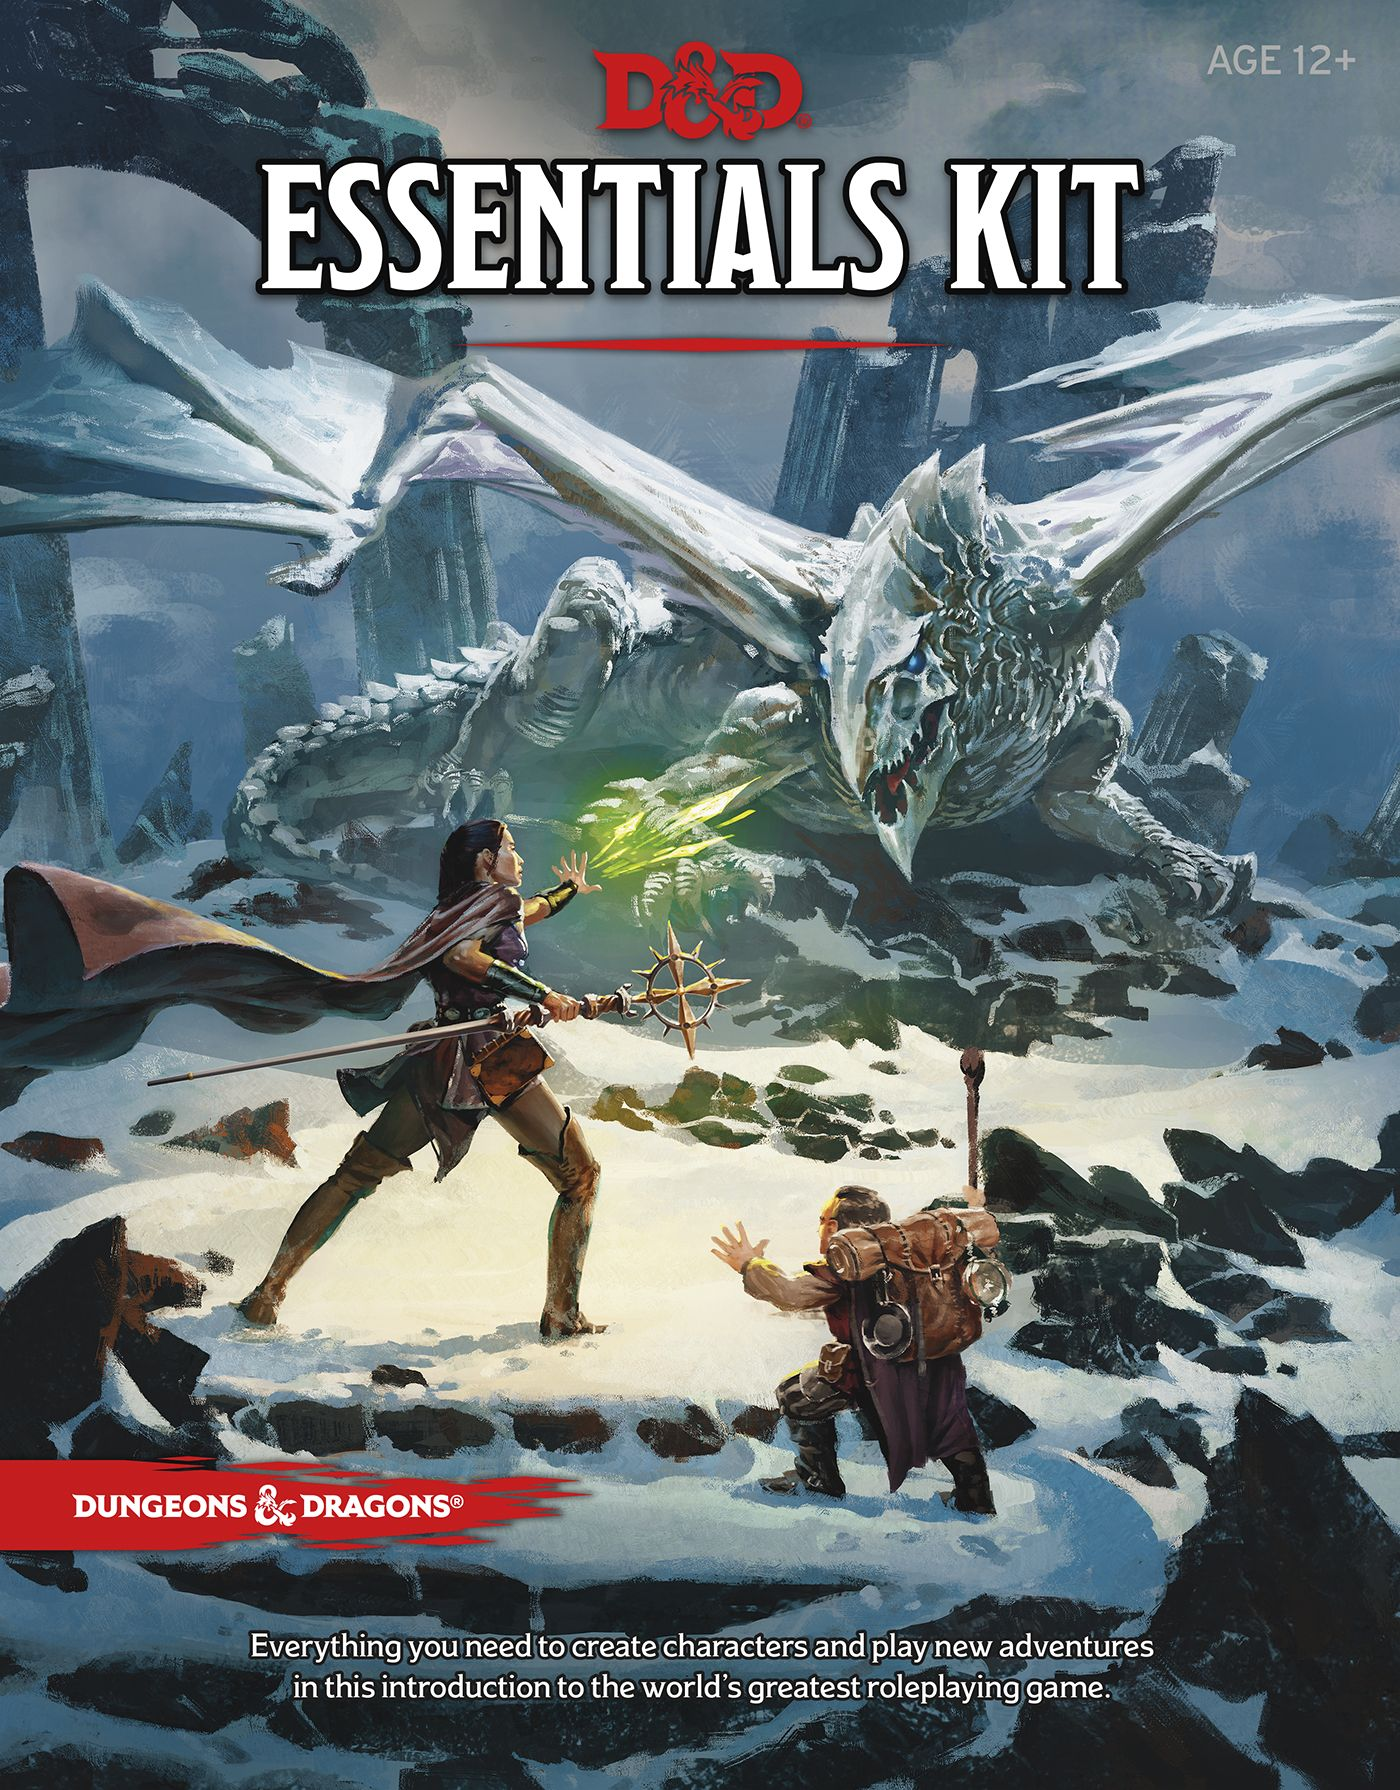 Dungeons & Dragons Essentials Kit | Forgotten Realms Wiki | FANDOM